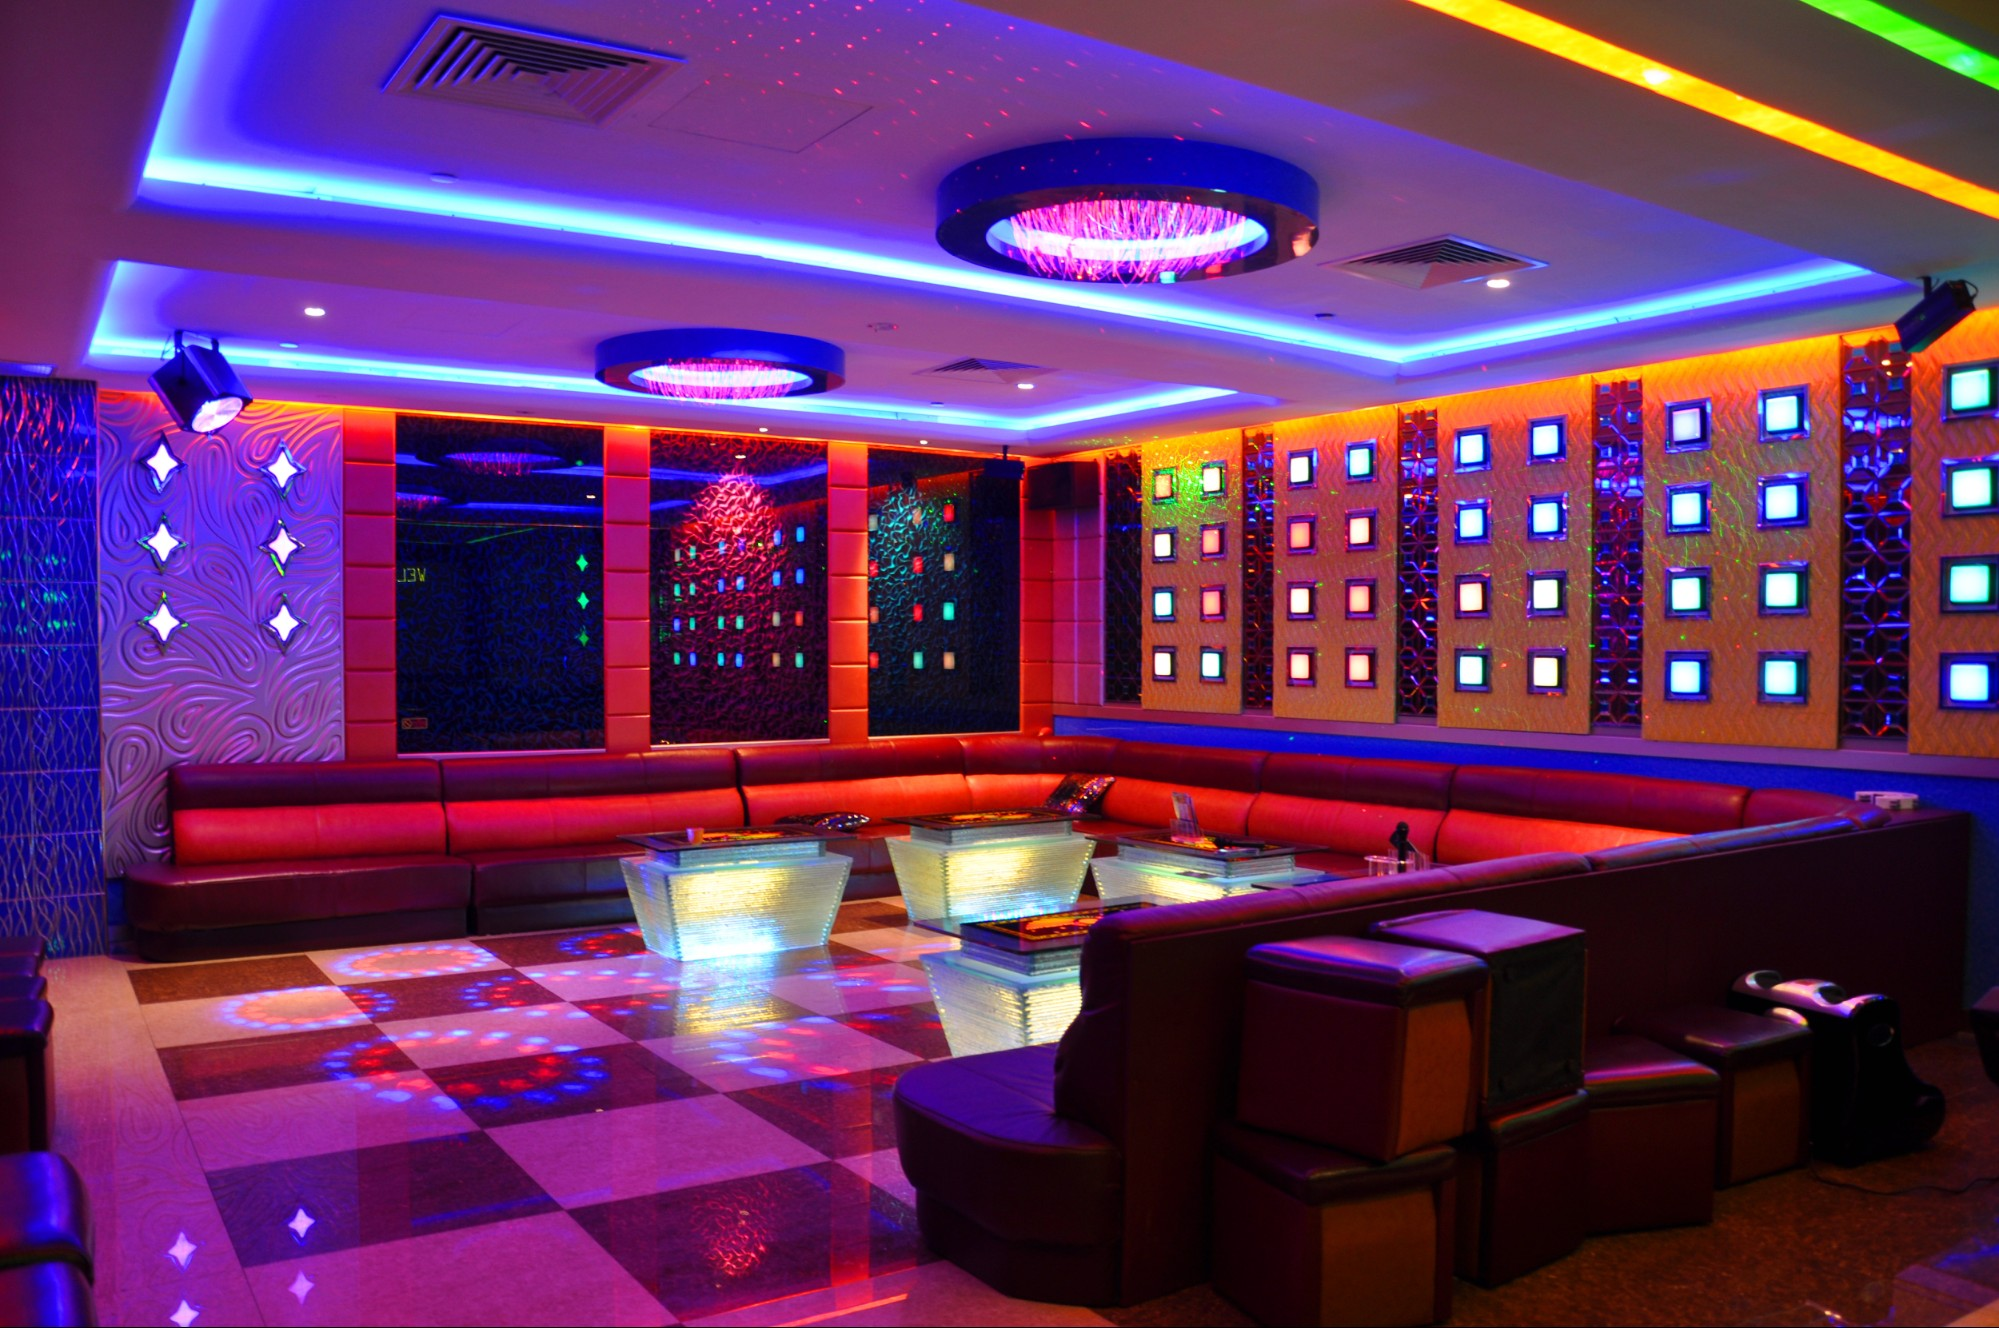 Singapore 39 s most luxurious ktv outlet accommodates 60 for Designer room outlet